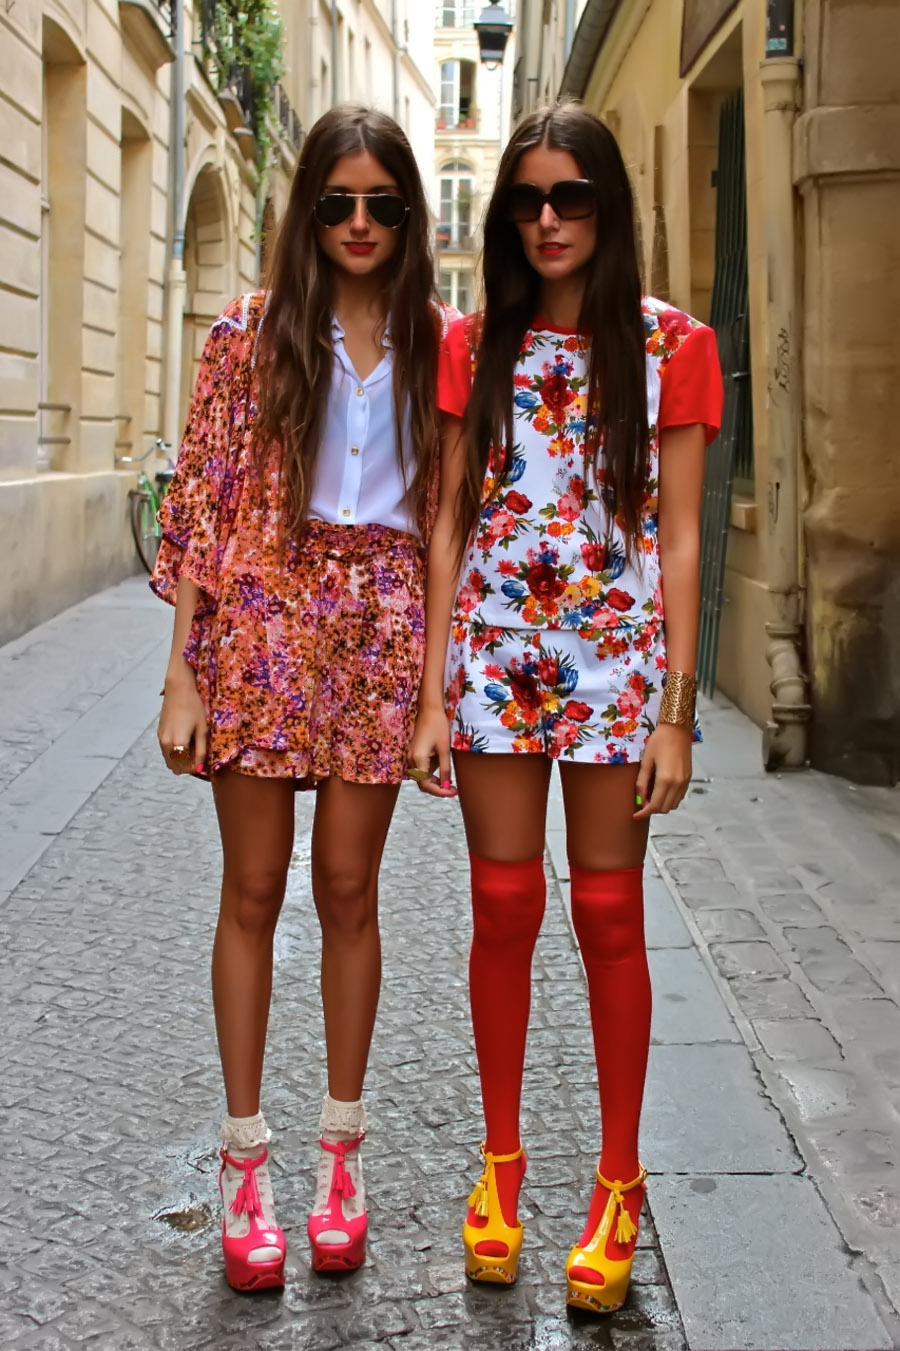 teen fashion 32360